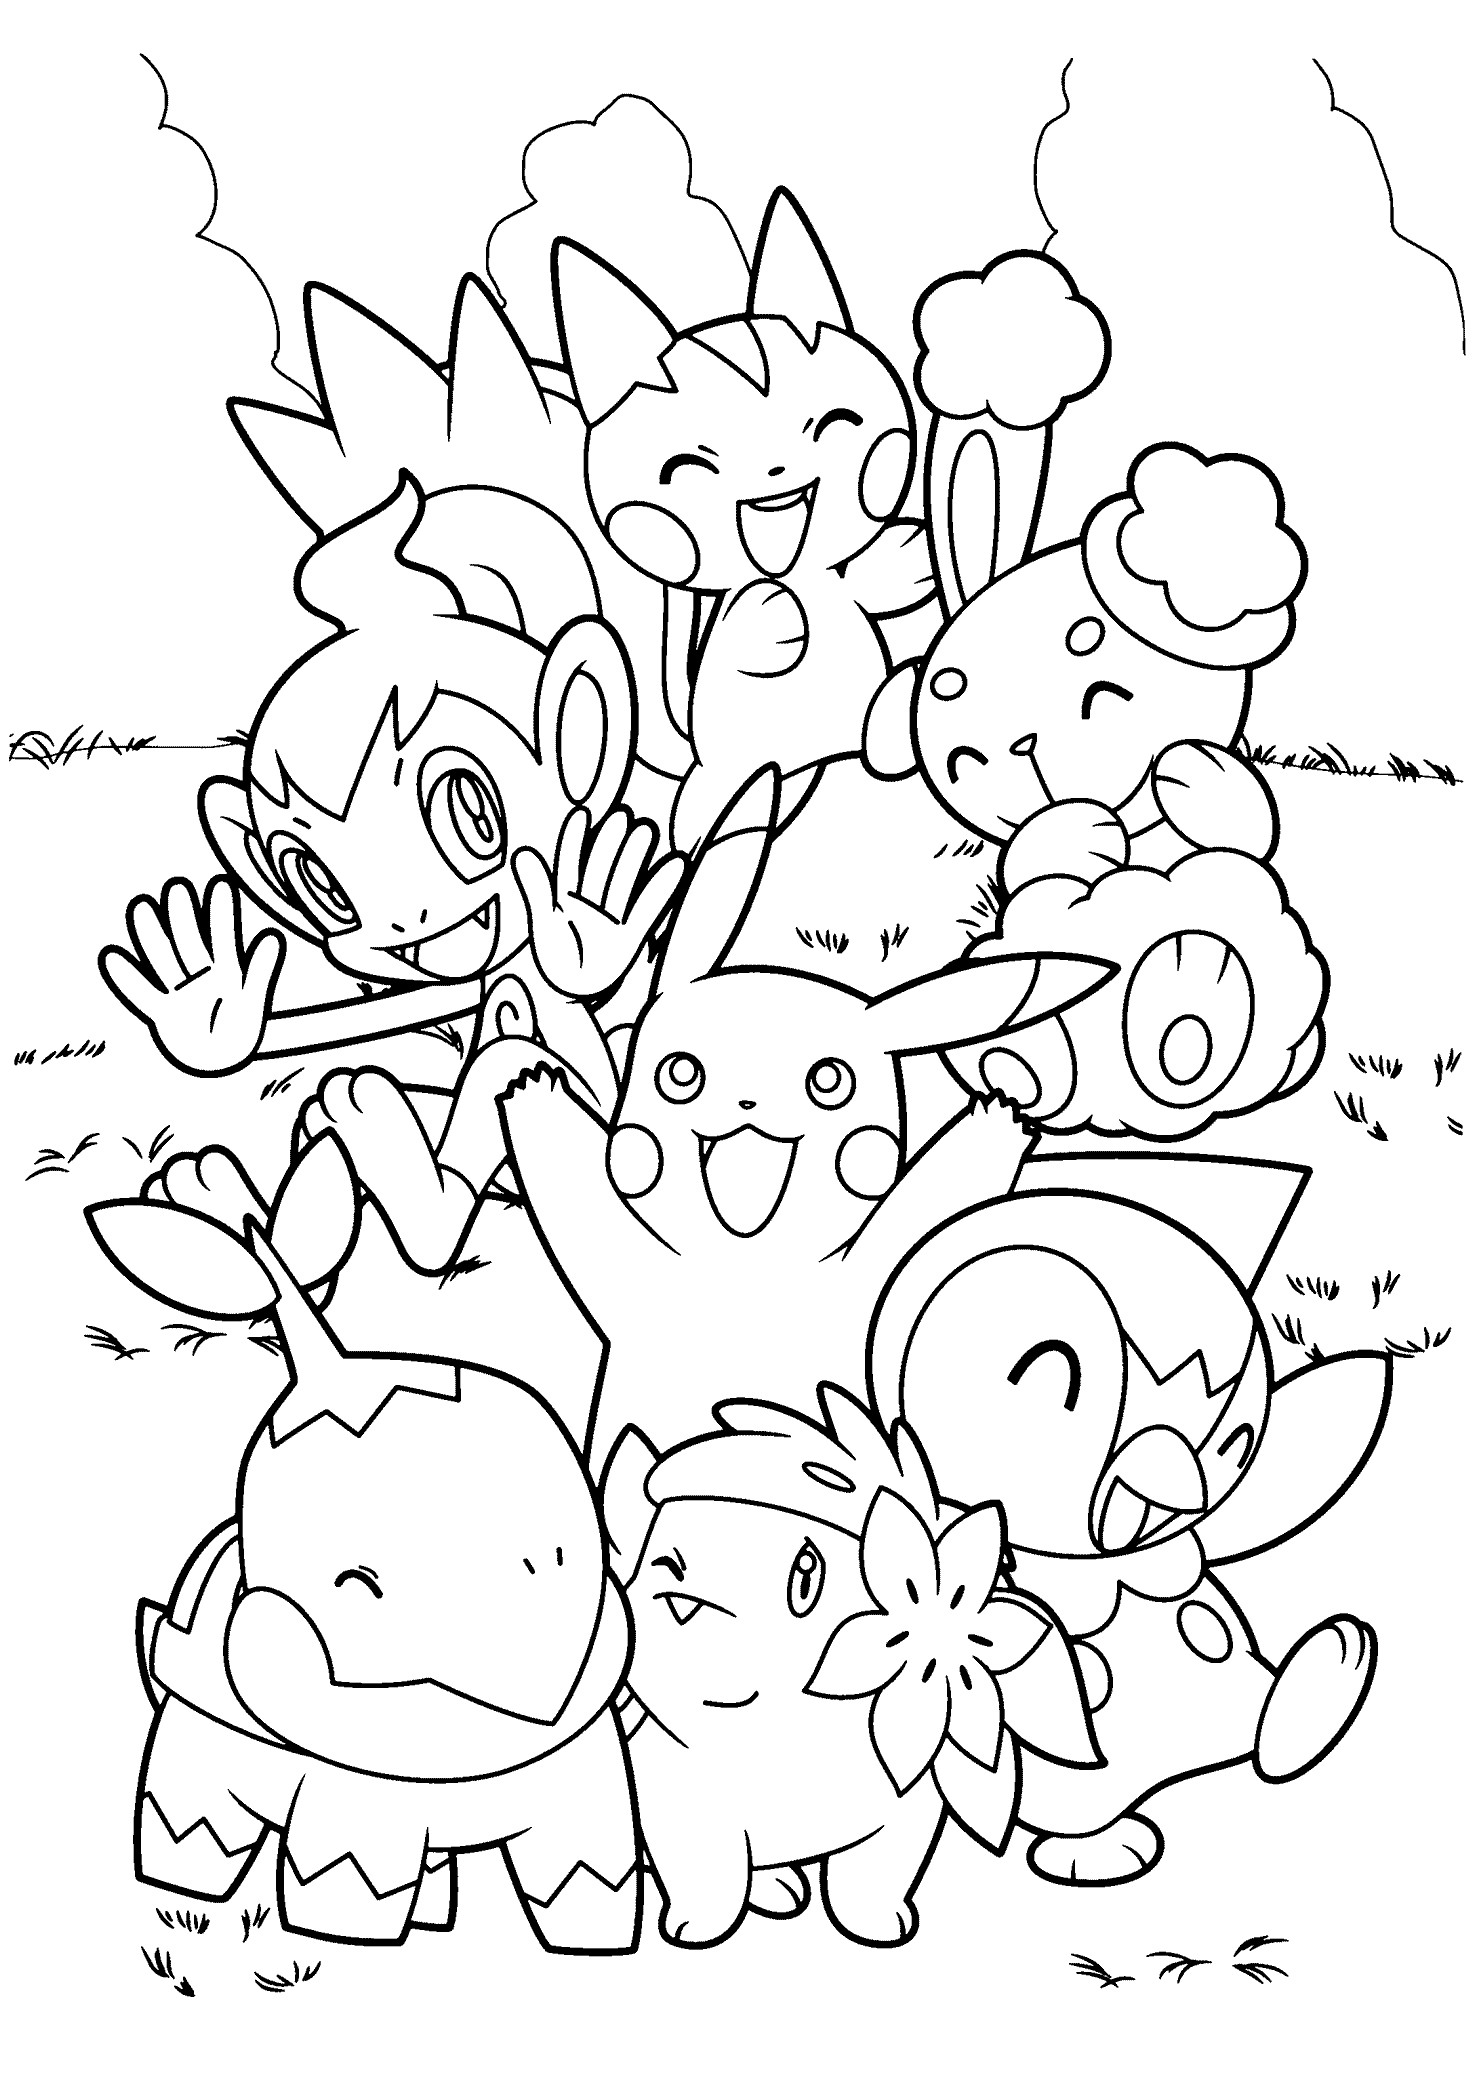 water pokemon coloring pages pokemon water coloring bubakidscom pages coloring pokemon water